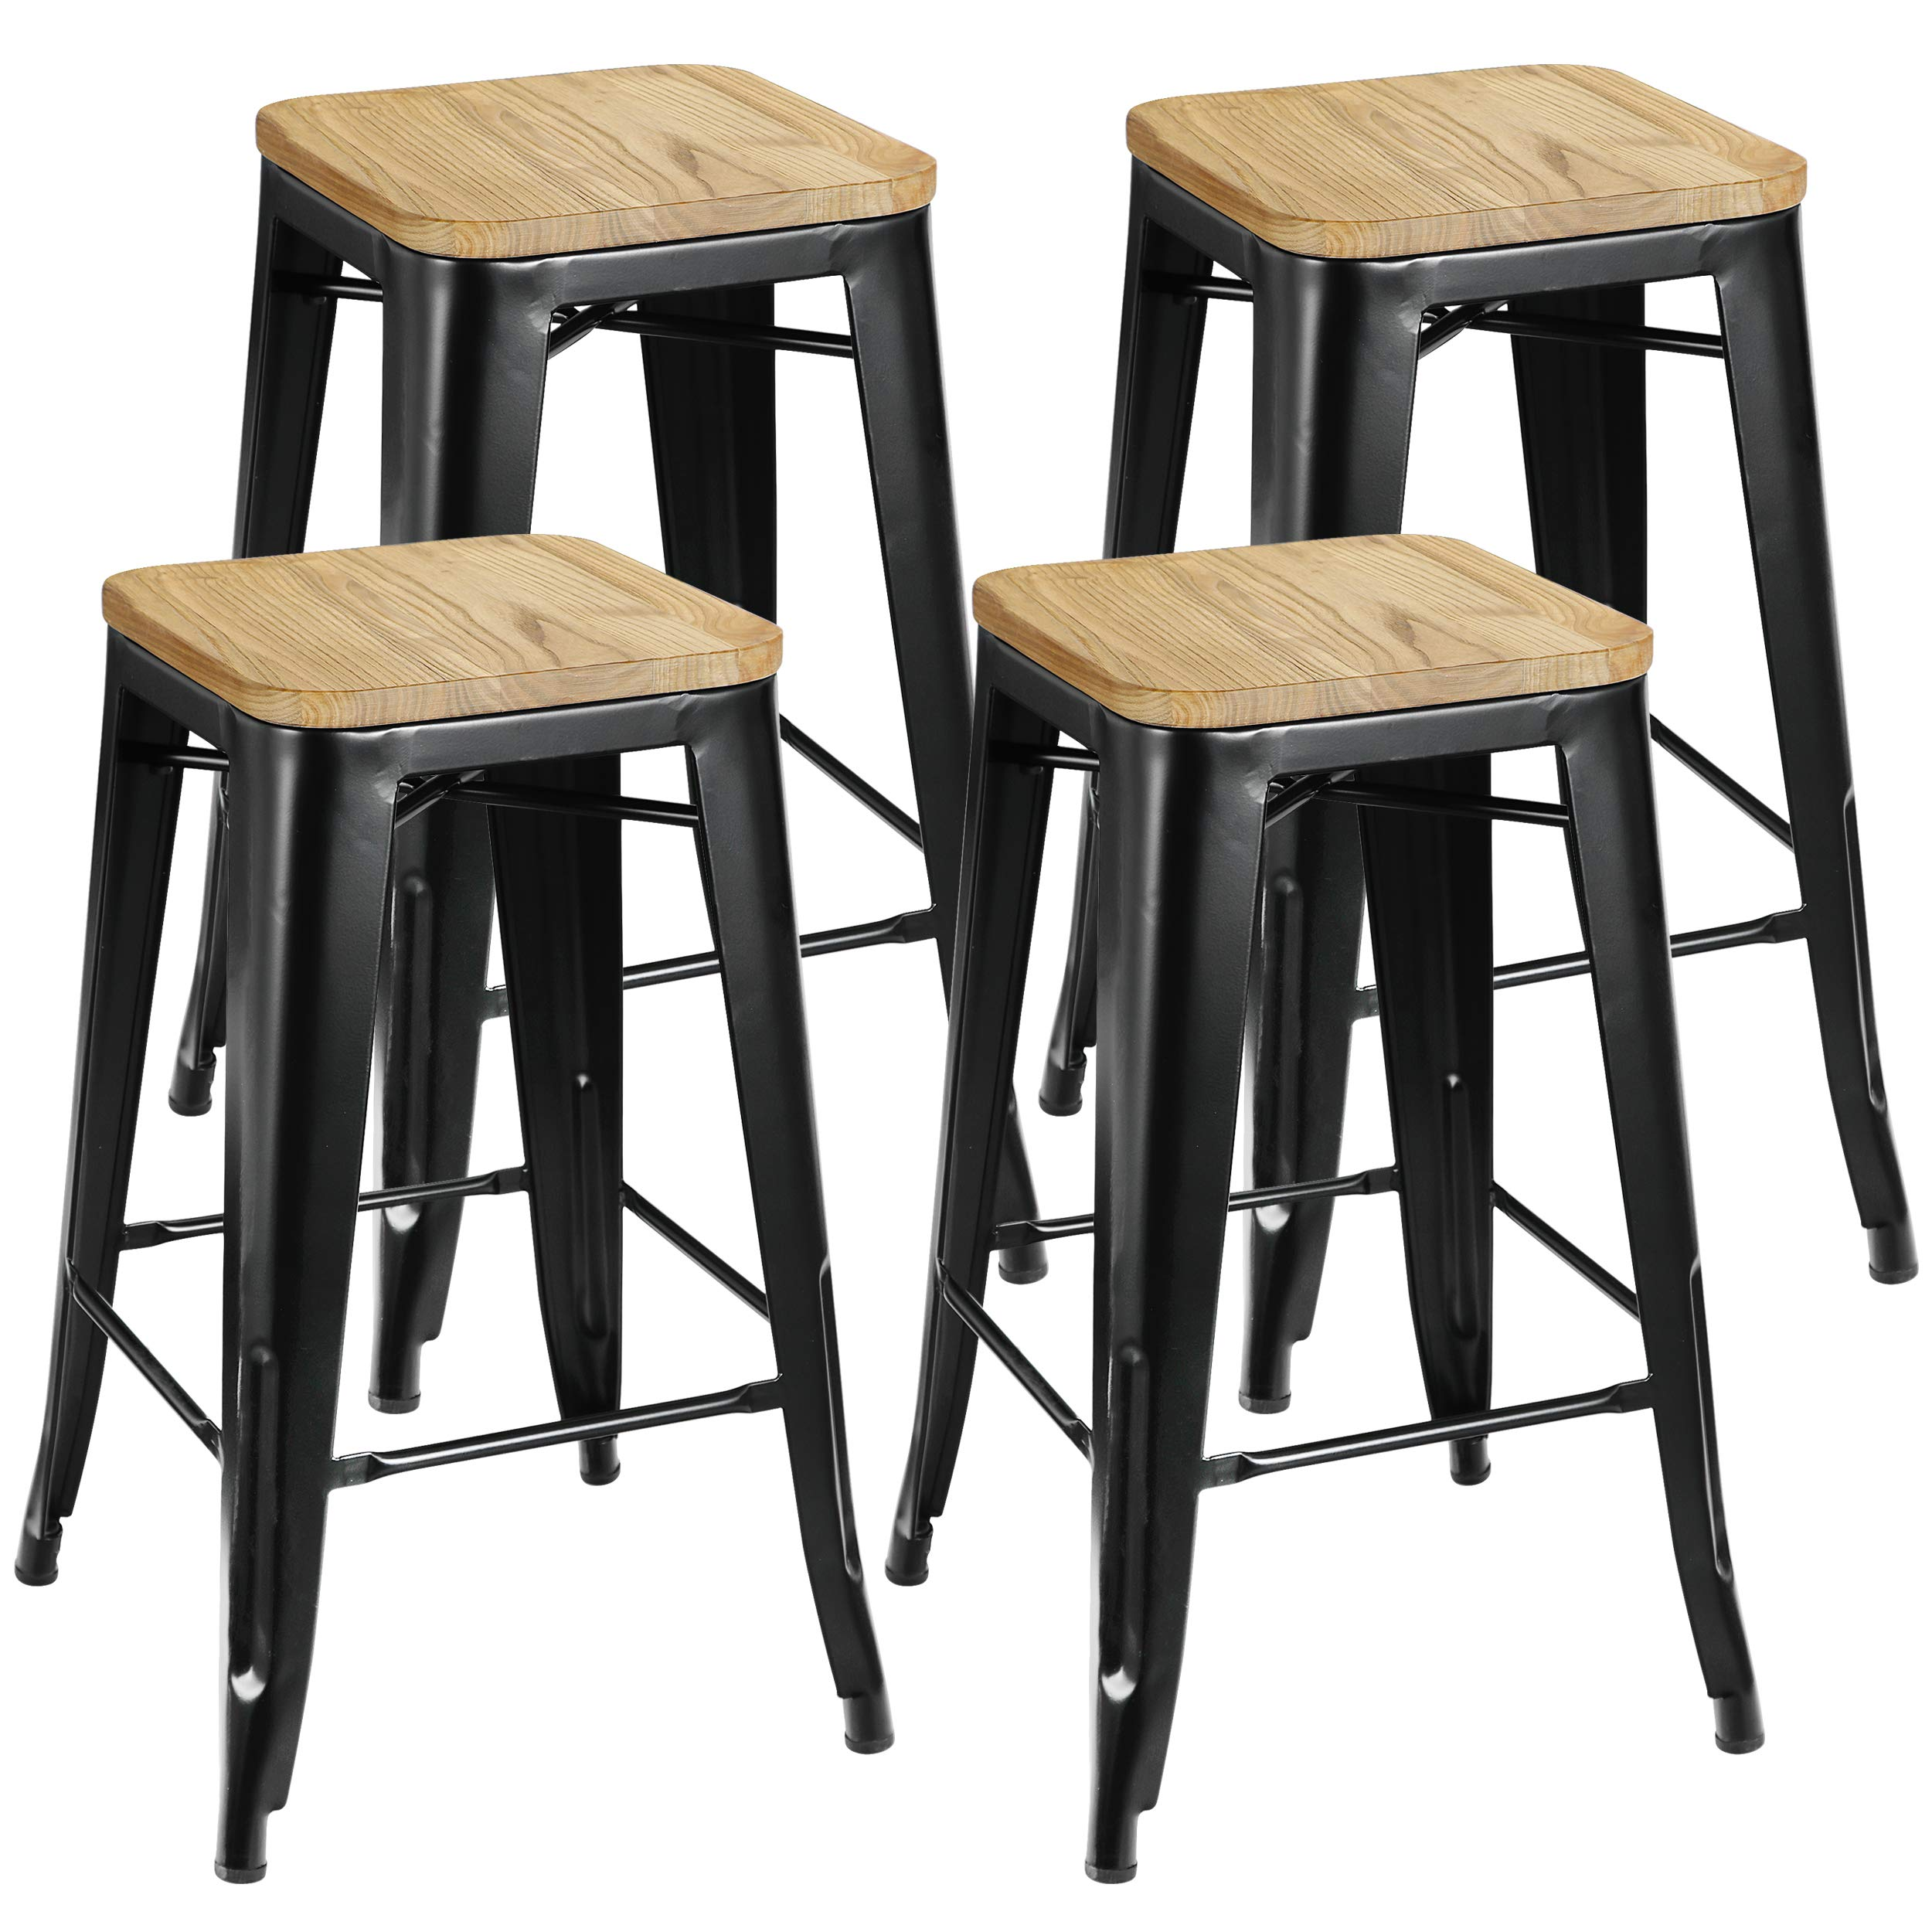 ZENY Set of 4 Metal Bar Stools 26'' Counter Height with Wooden Seat Stackable Indoor/Outdoor Barstools, 330 lbs Capacity by ZENY